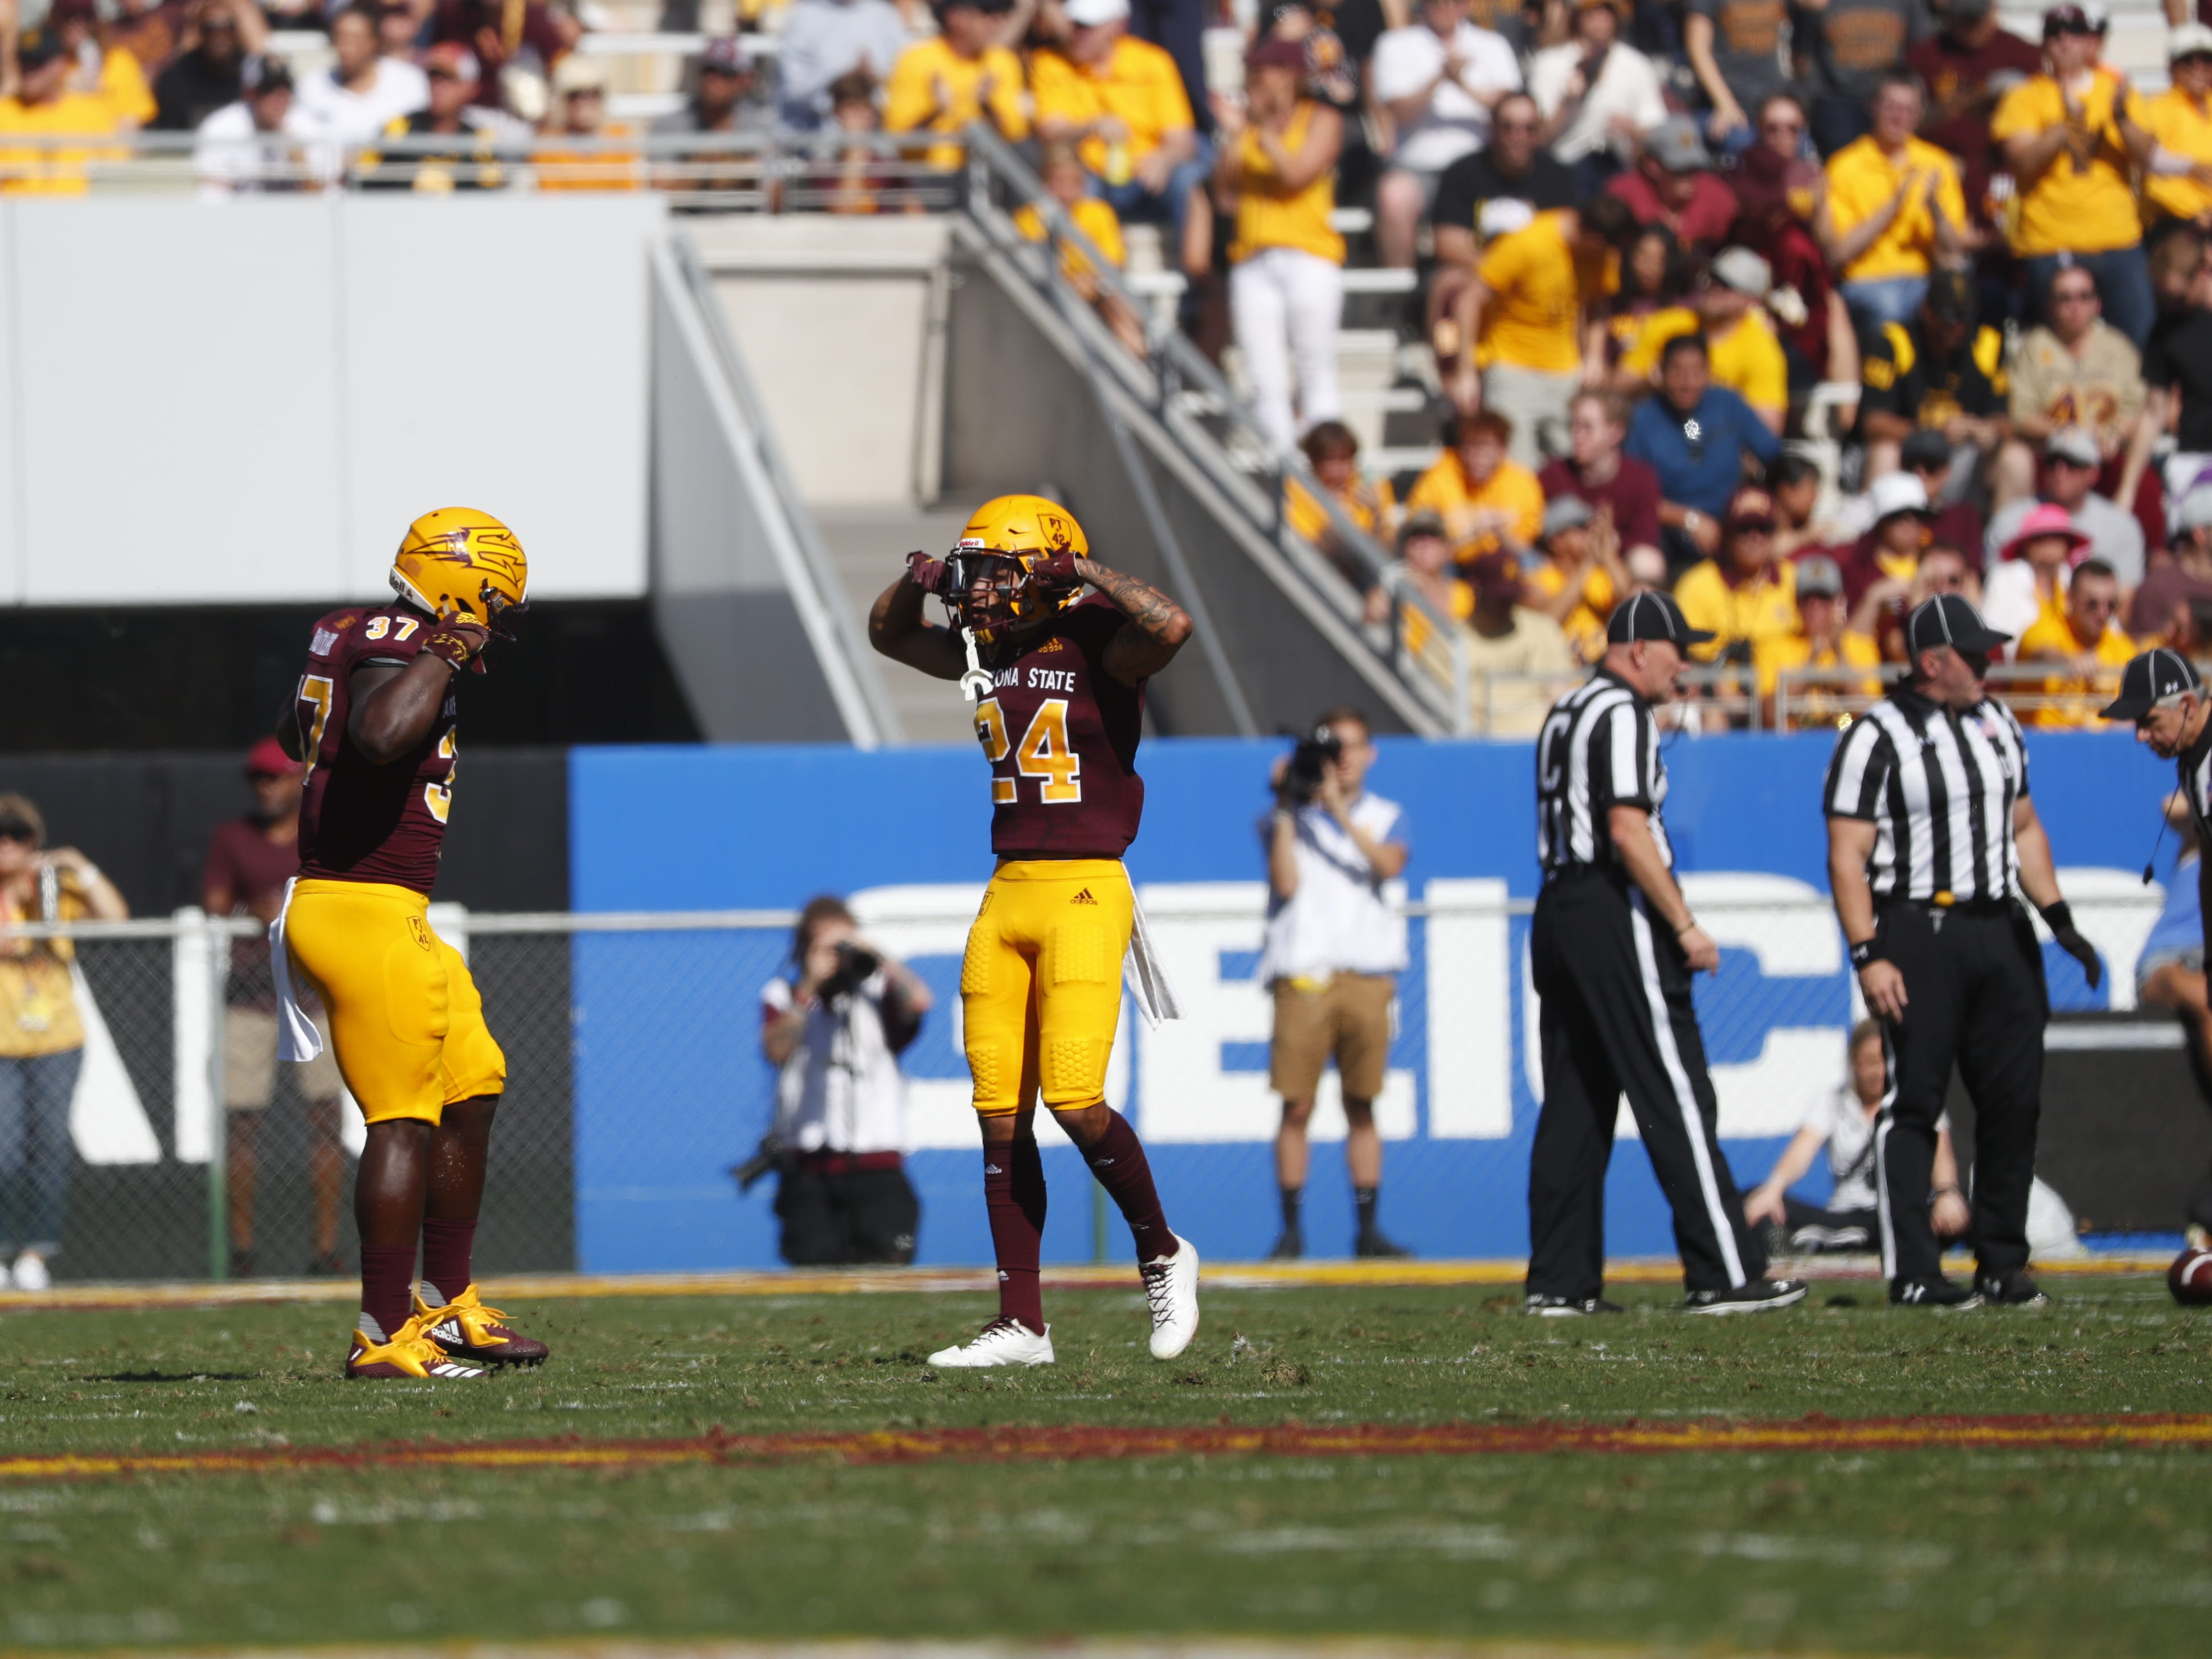 ASU's Chase Lucas (24) celebrates after the team forces a turnover on downs against UCLA during the first half at Sun Devil Stadium in Tempe, Ariz. on November 10, 2018.